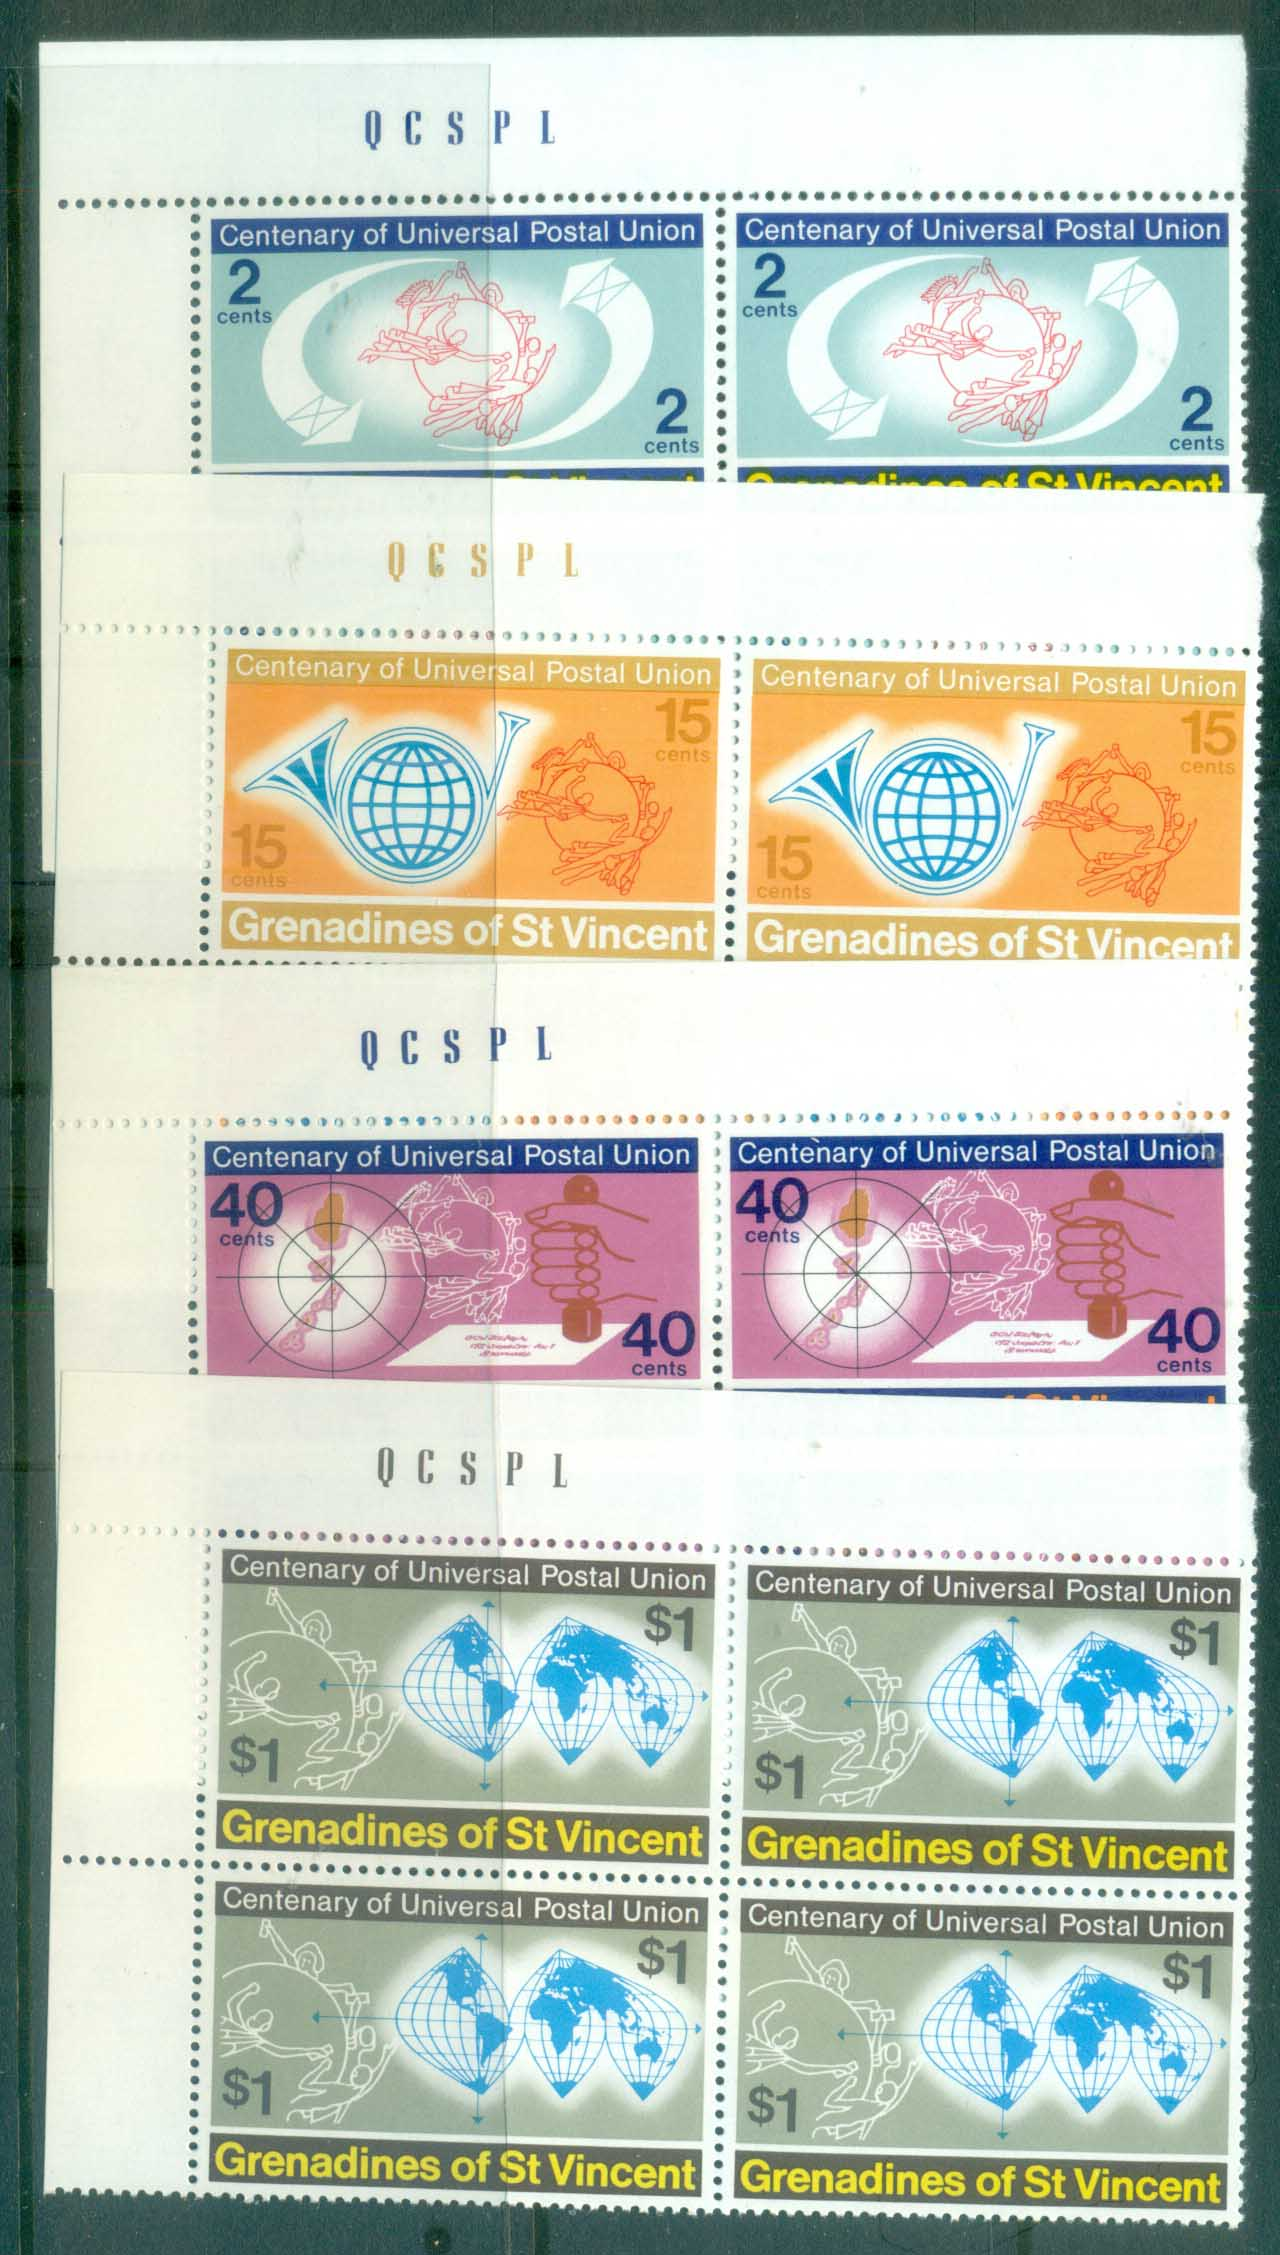 St Vincent Grenadines 1974 Centenary of UPU Blk 4 MUH lot76381